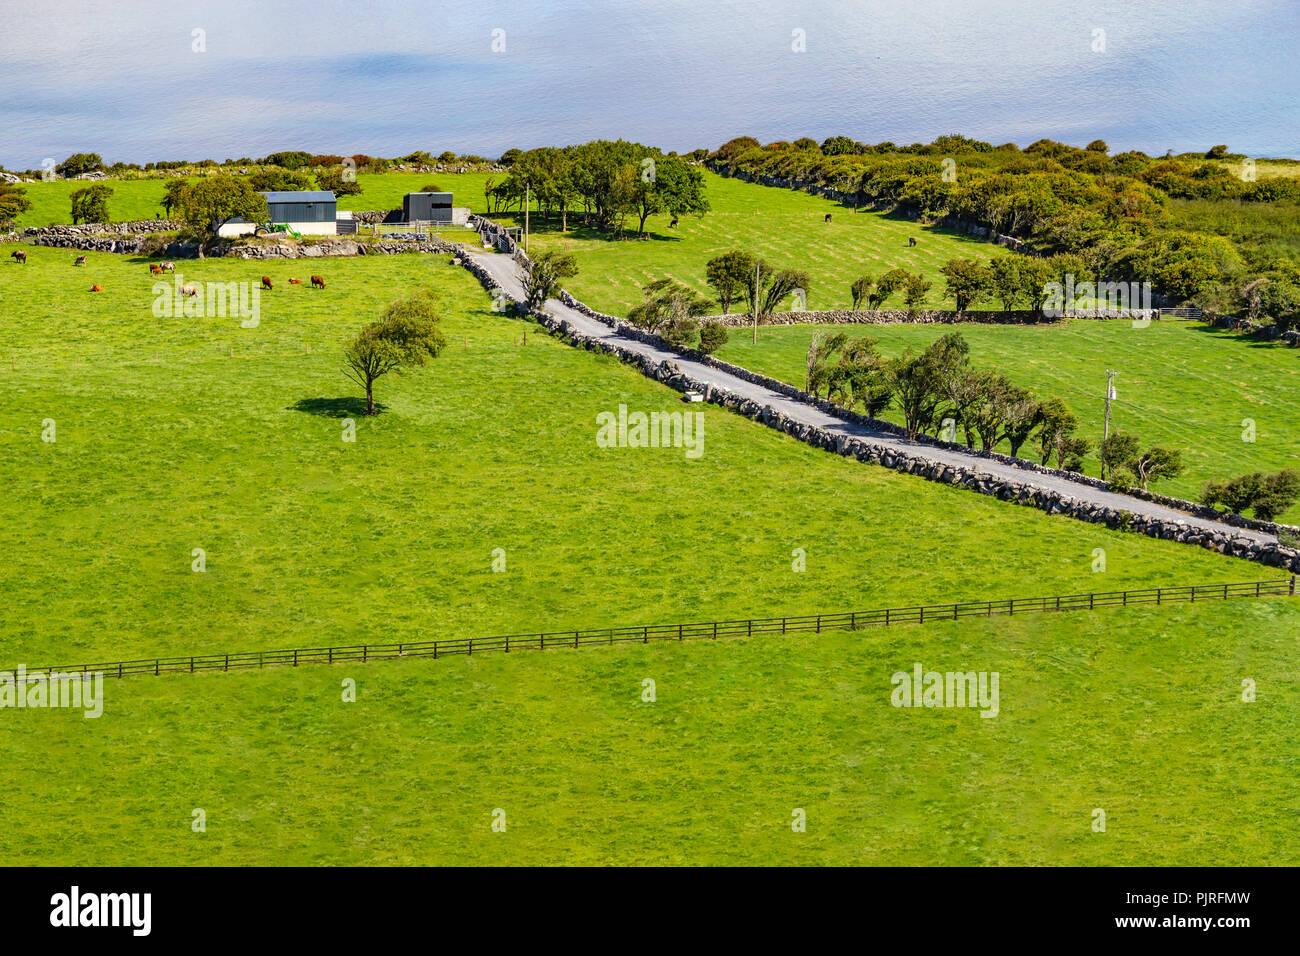 Farm and beach in Ballyvaughan, Clare, Ireland - Stock Image